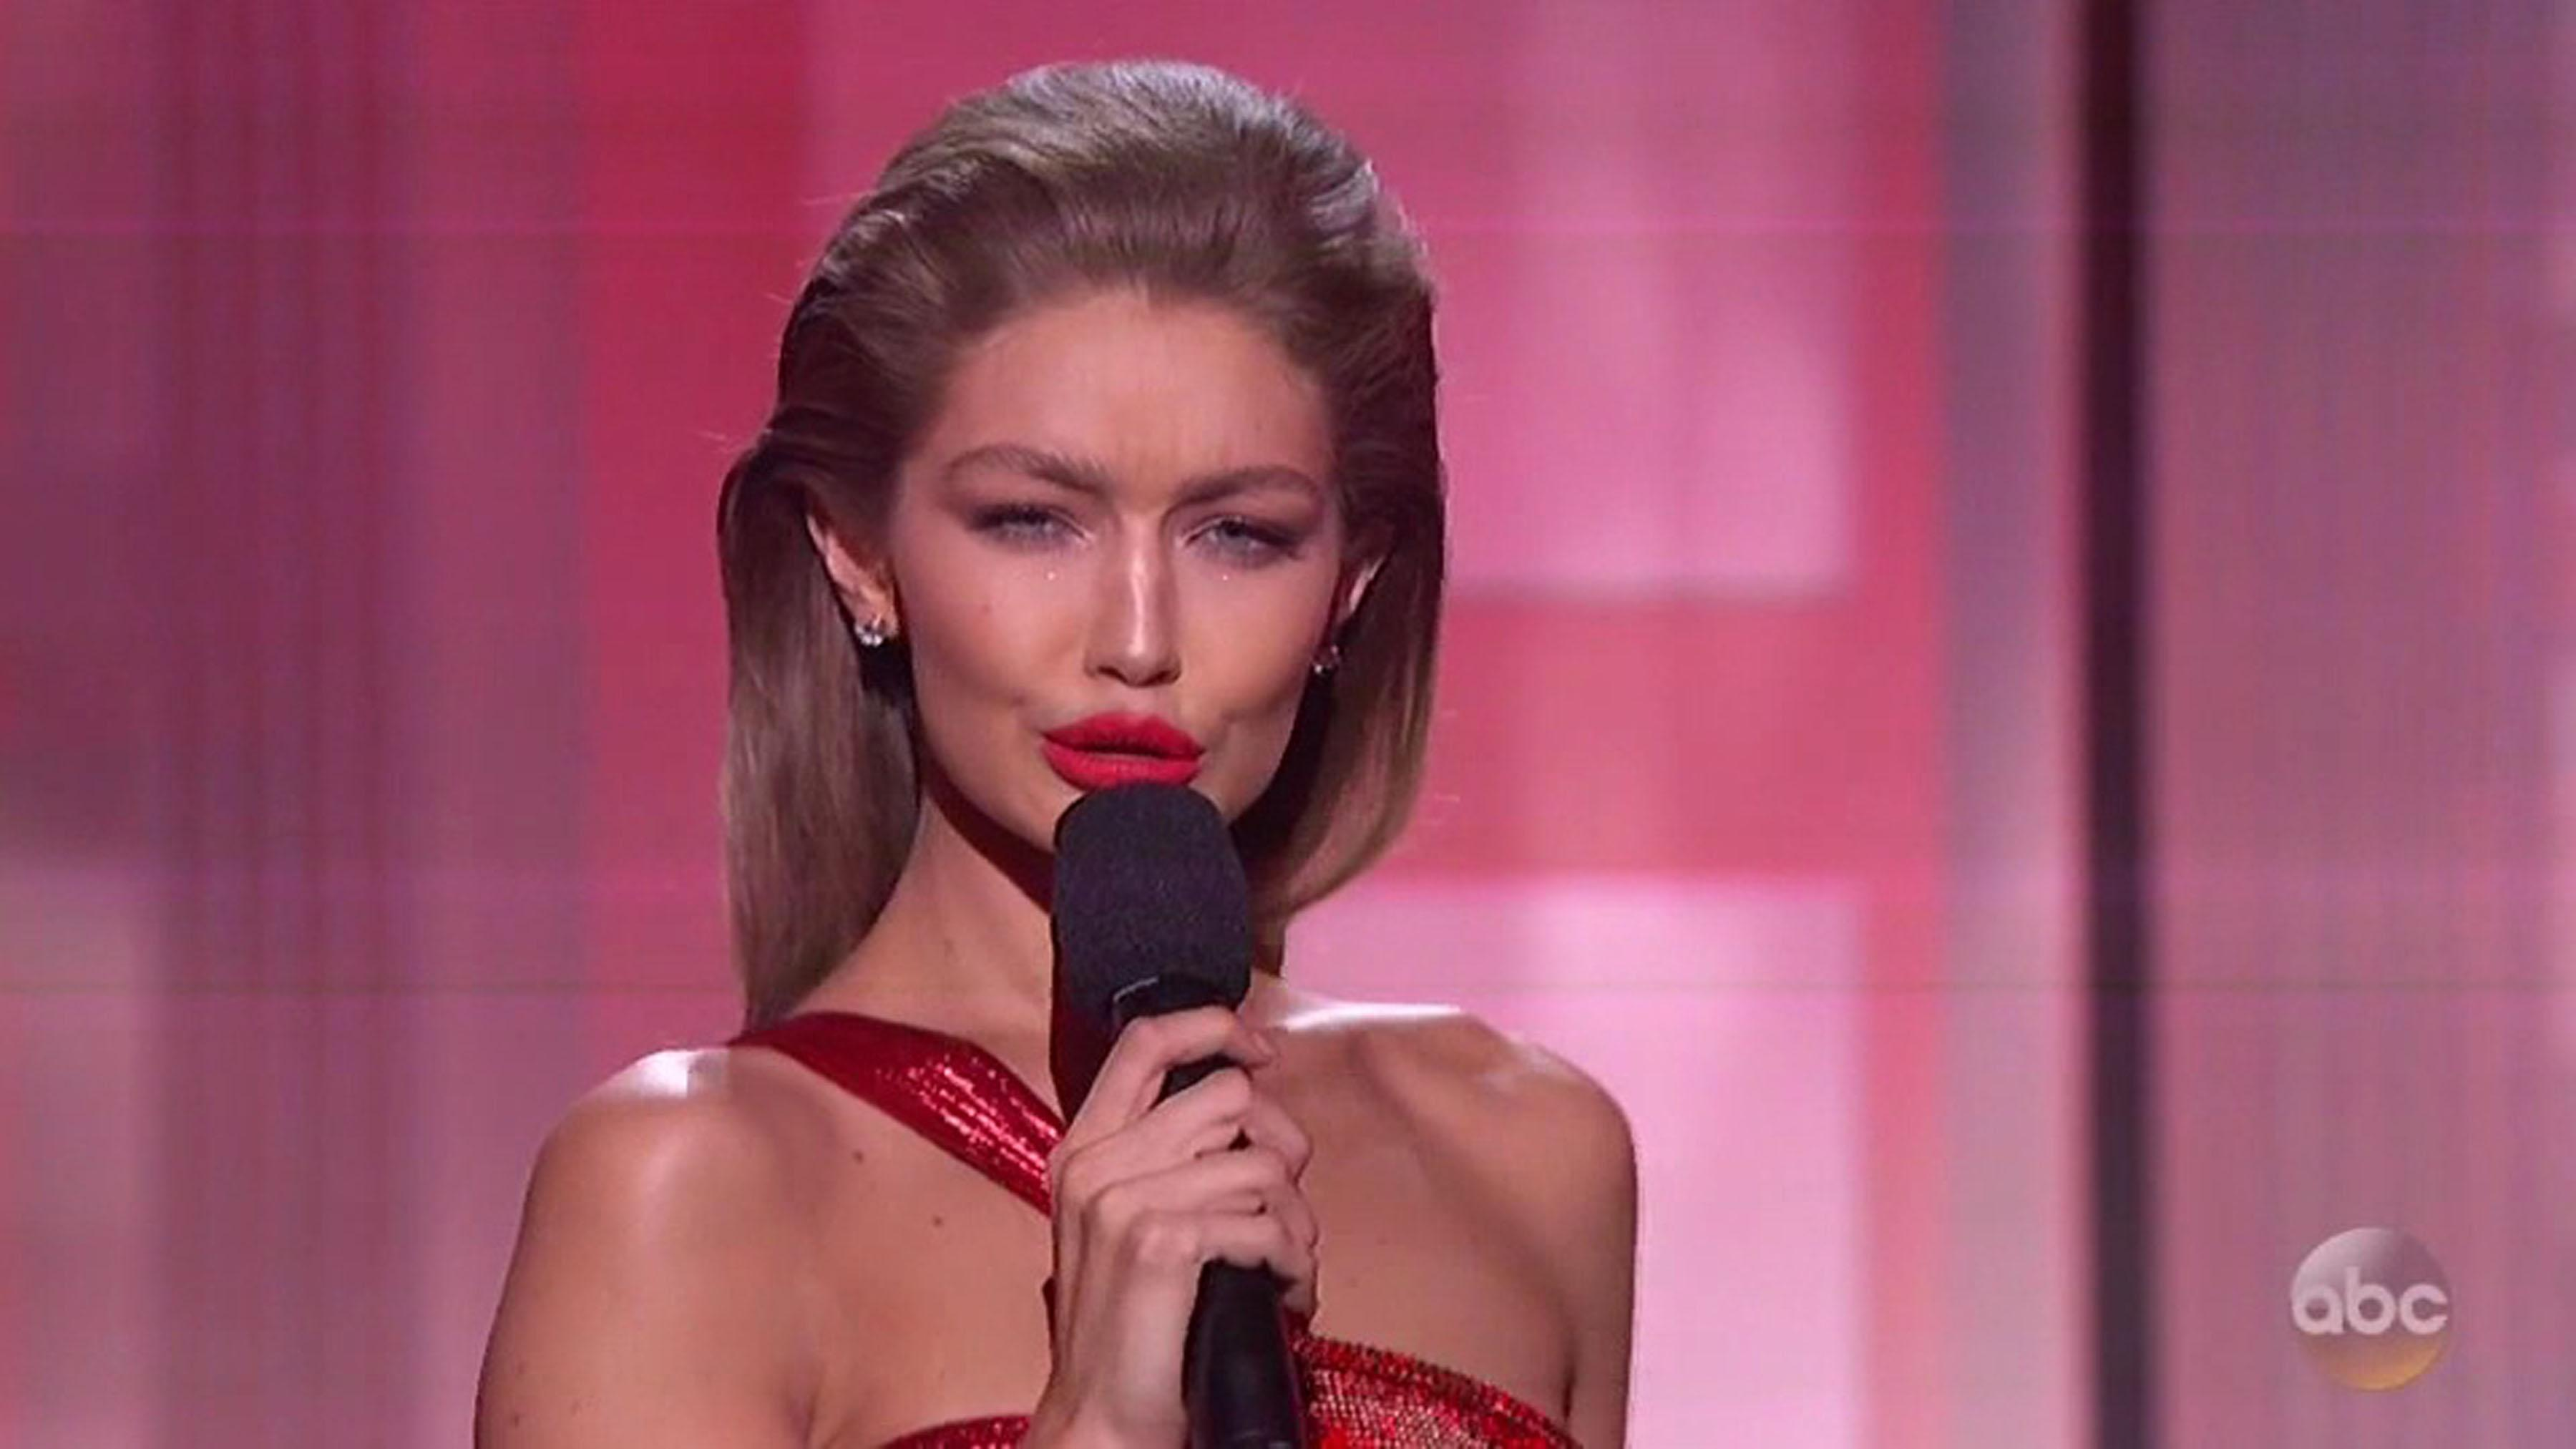 Model Gigi Hadid is branded 'racist' after impersonating Melania Trump while hosting the American Music Awards